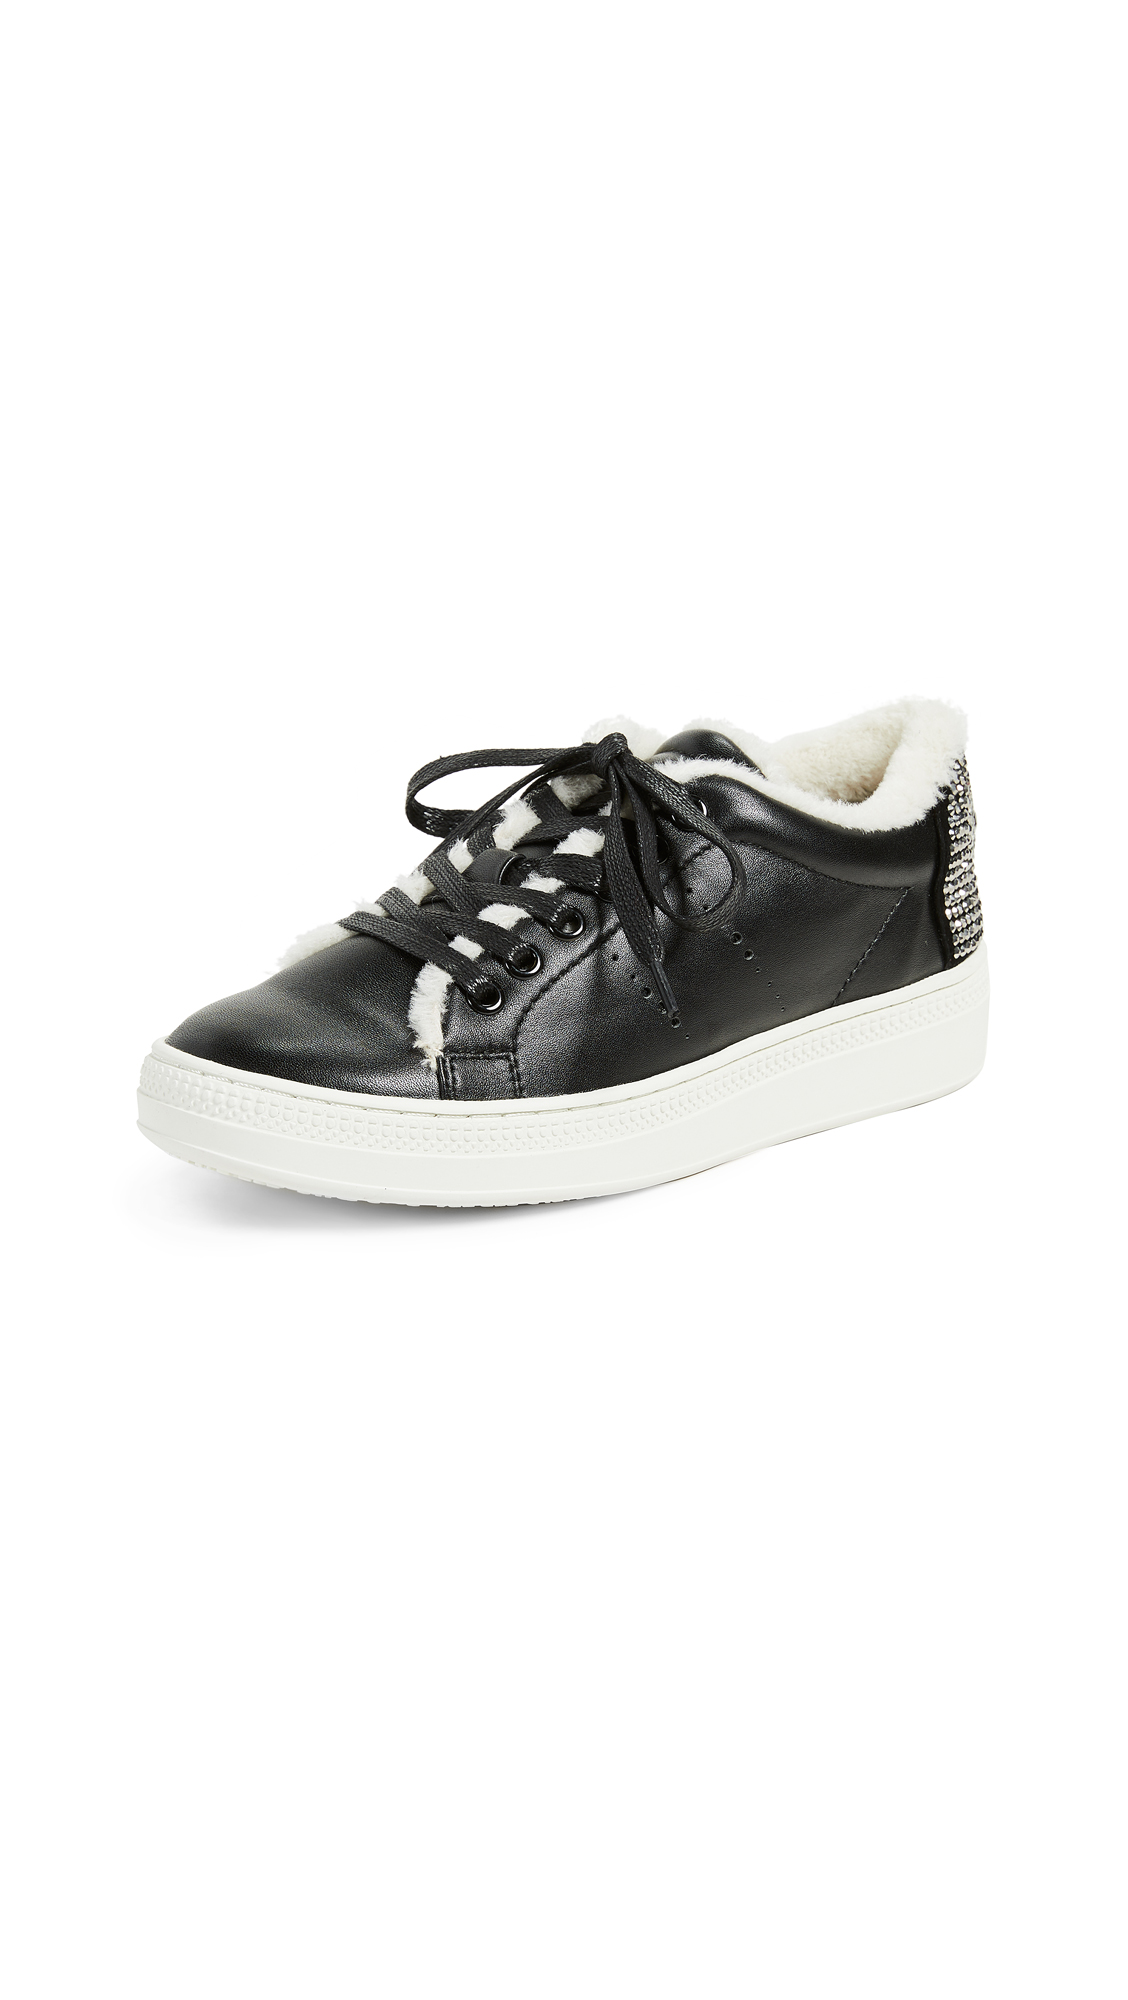 ONE by Lace Up Eye Sneakers - Black